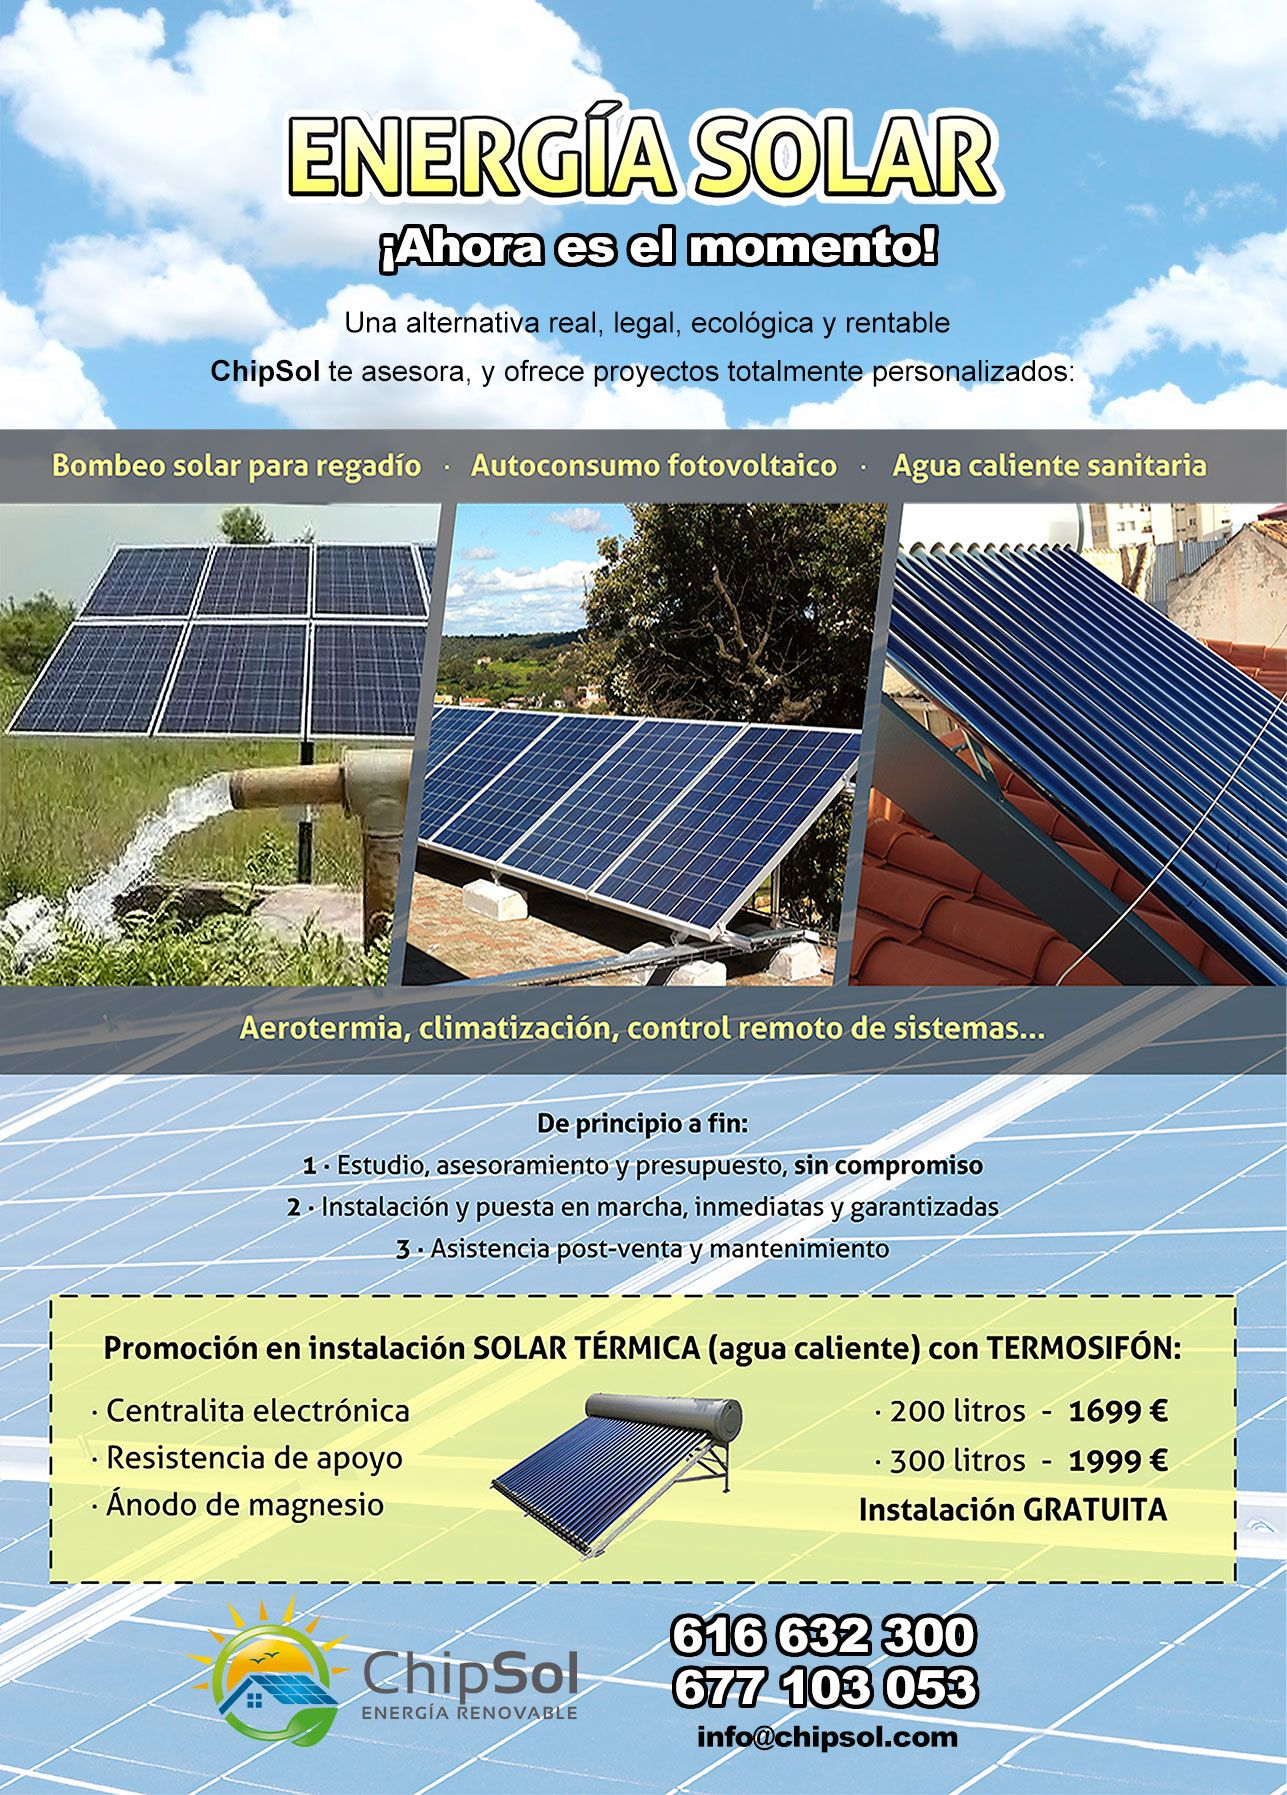 ChipSol Energia renovable